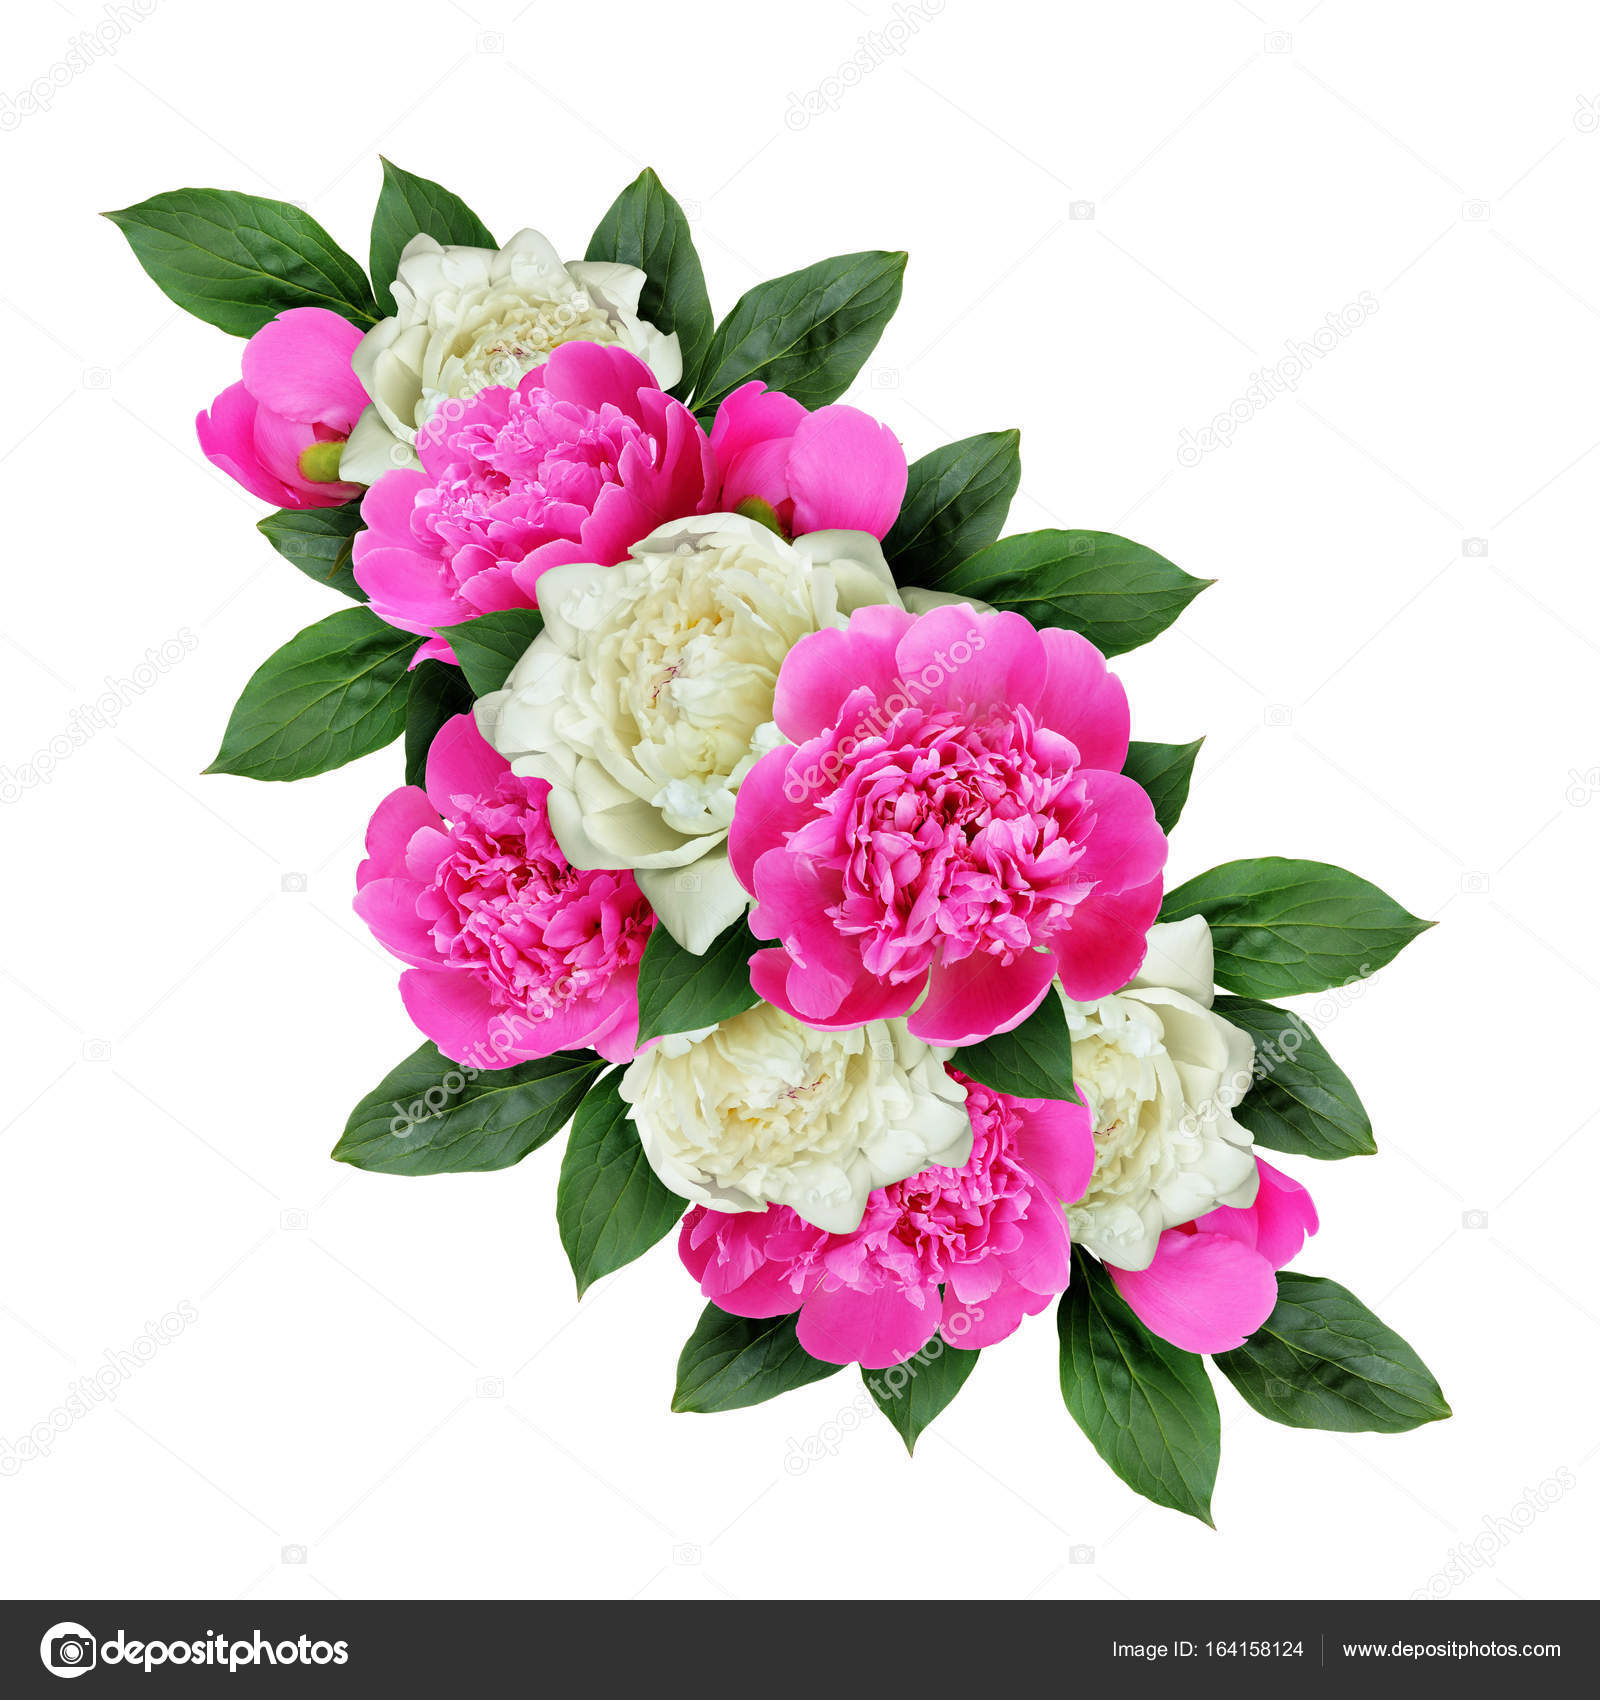 Pink and white peonies flowers arrangement stock photo ksushsh pink and white peonies flowers arrangement stock photo mightylinksfo Image collections